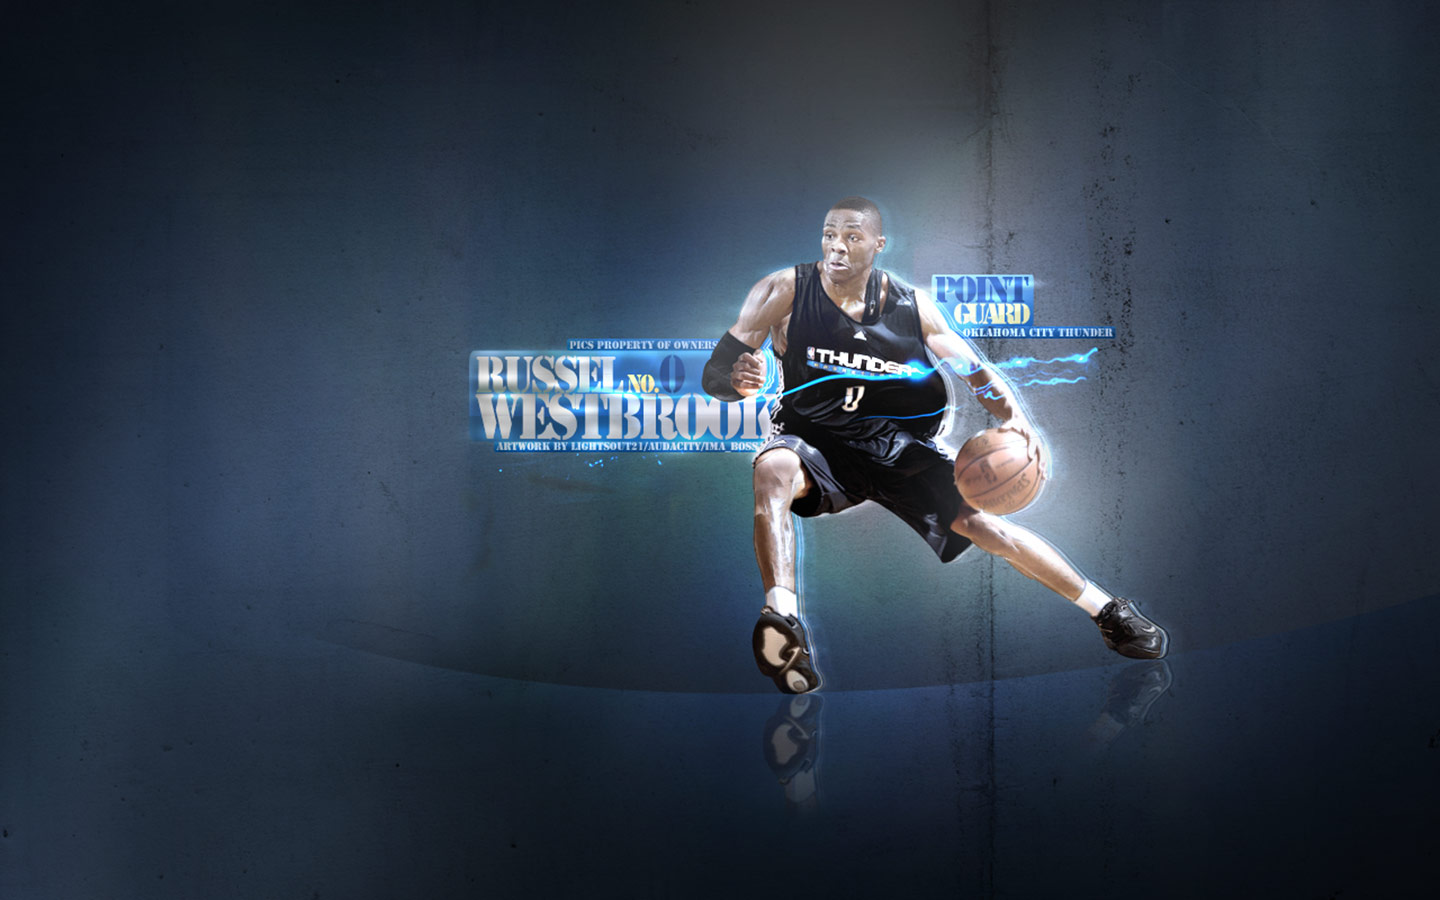 Russell westbrook wallpaper iphone wallpapersafari - Top Nba Wallpapers Russell Westbrook Wallpapers